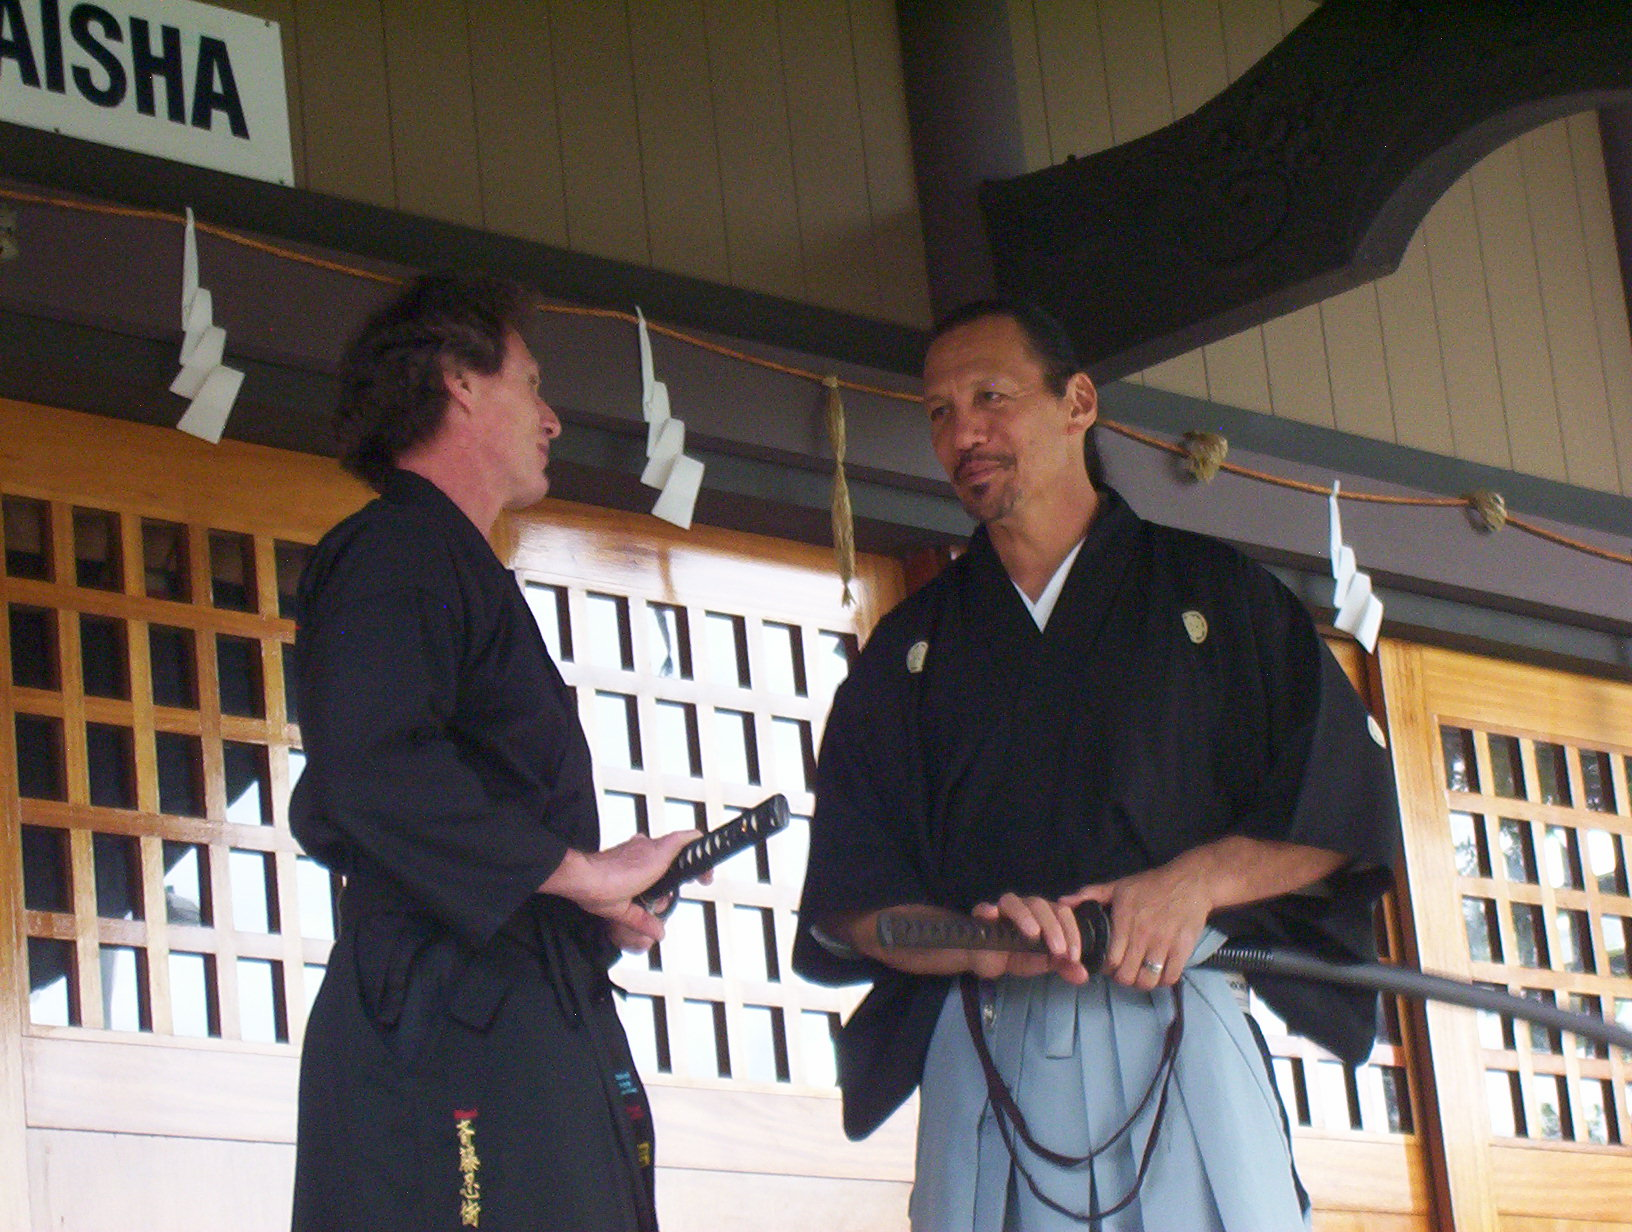 Master Maui Saito & Sensei Daron Brotherton, his highest ranked black belt student and instructor.